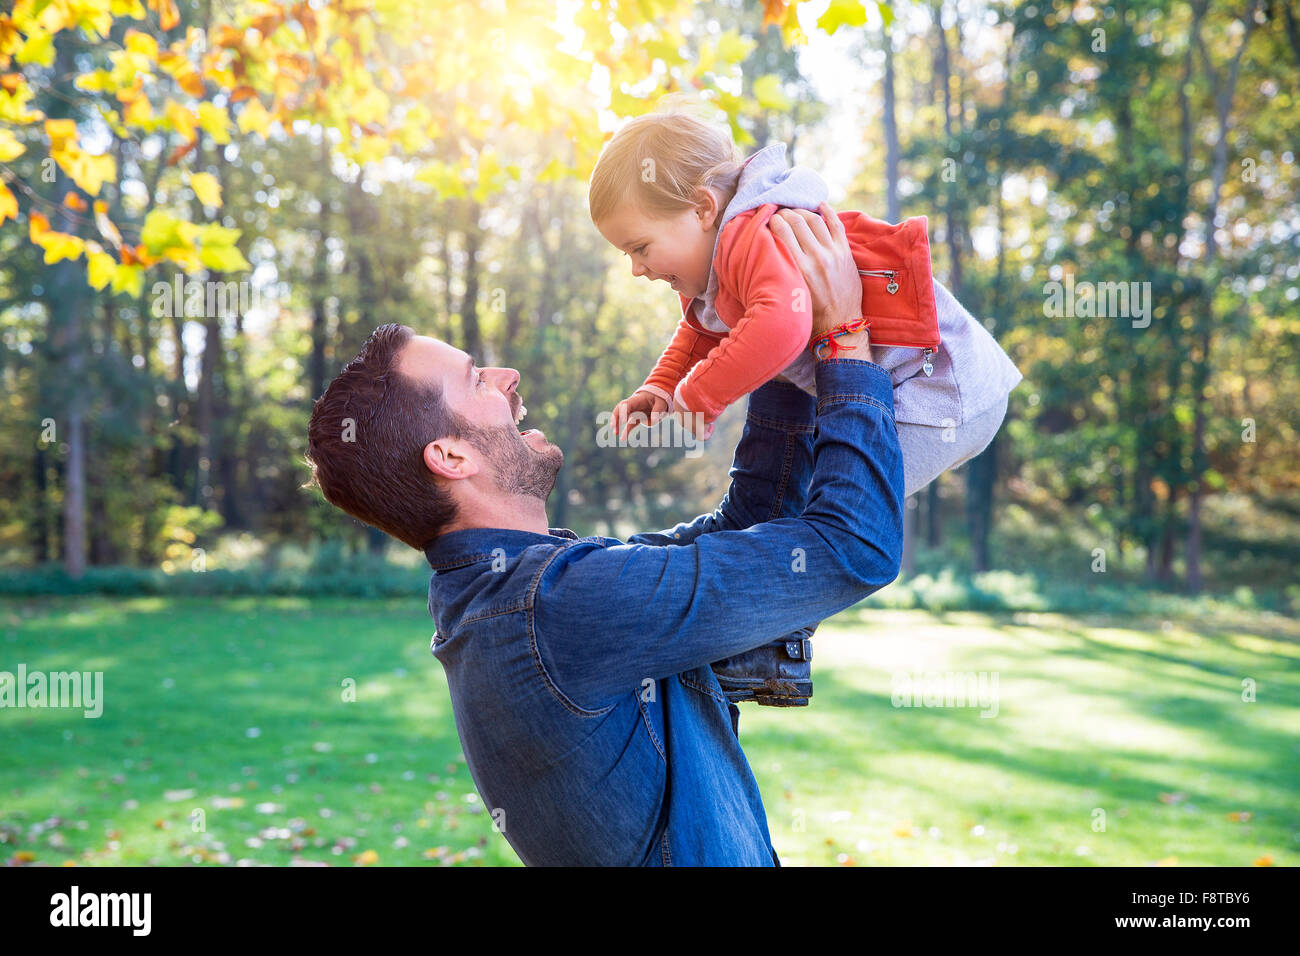 Dad playing with his daughter - Stock Image